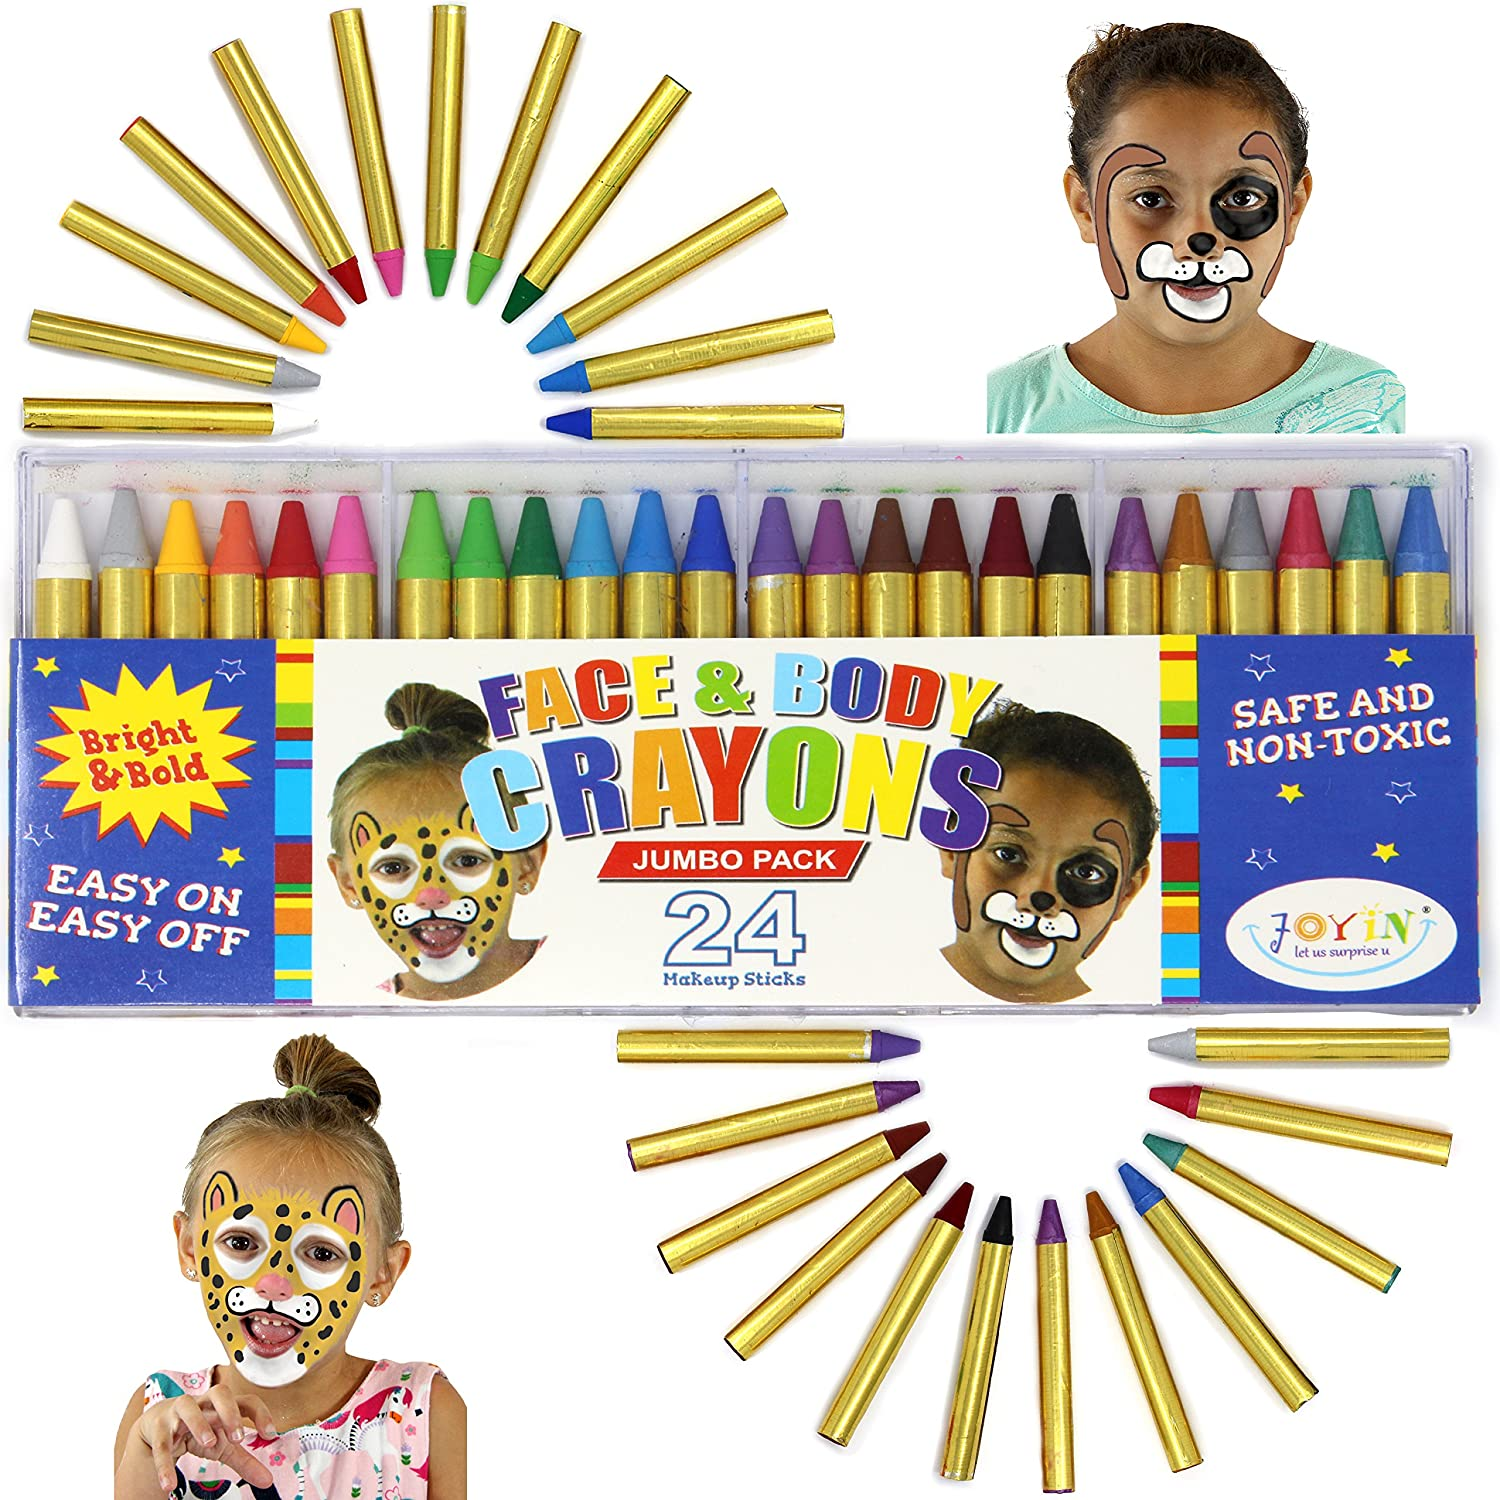 Top 9 Best Face Painting Kits (2020 Reviews & Buying Guide) 1